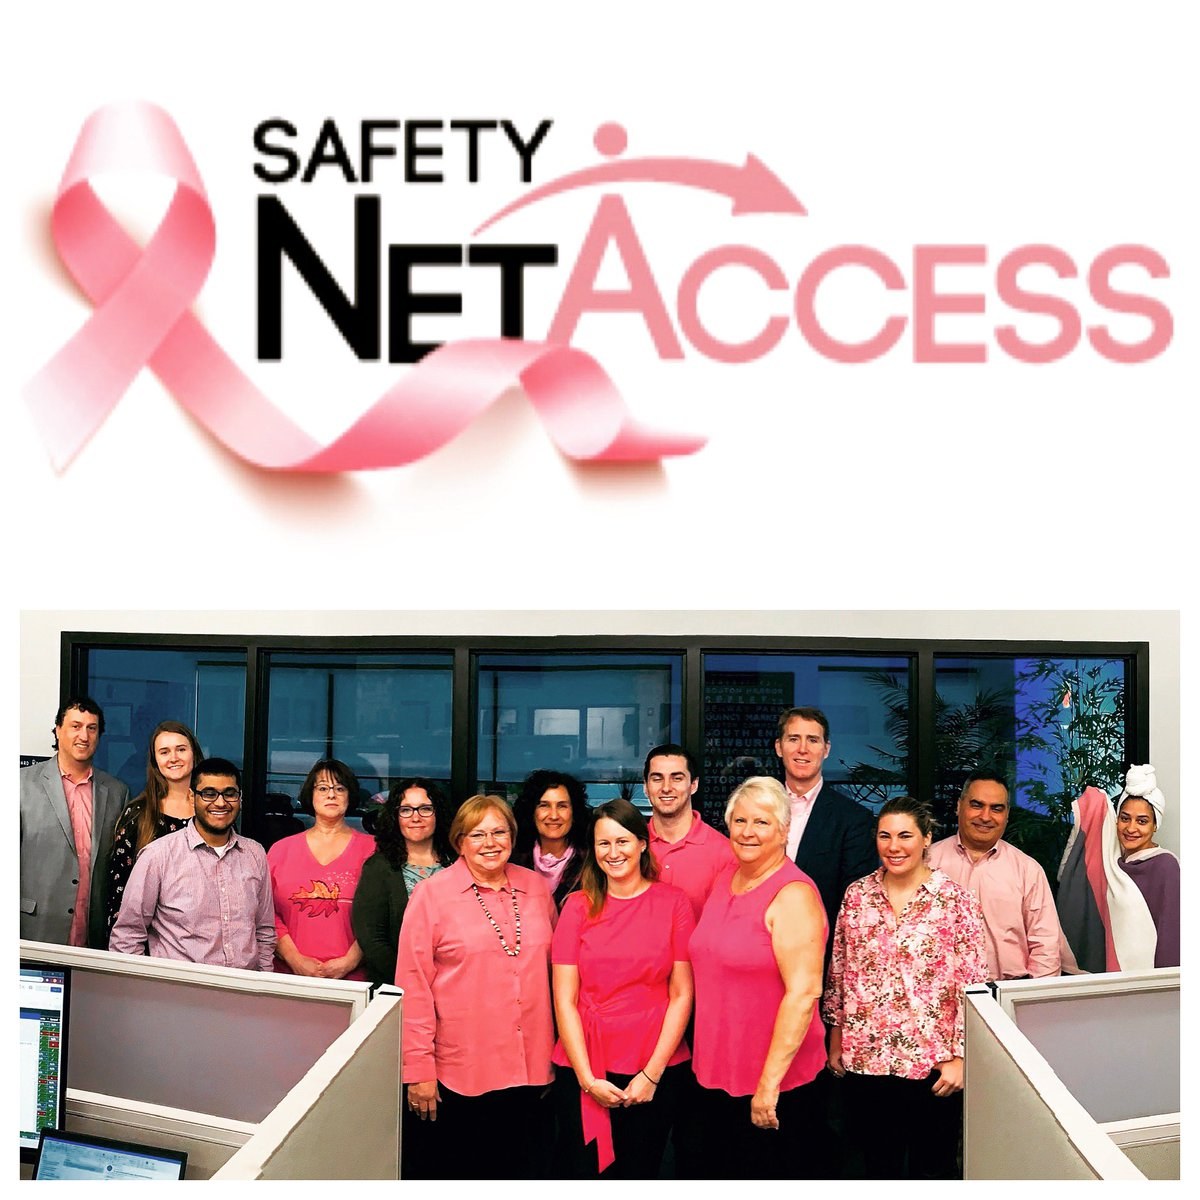 safetynetaccess photo